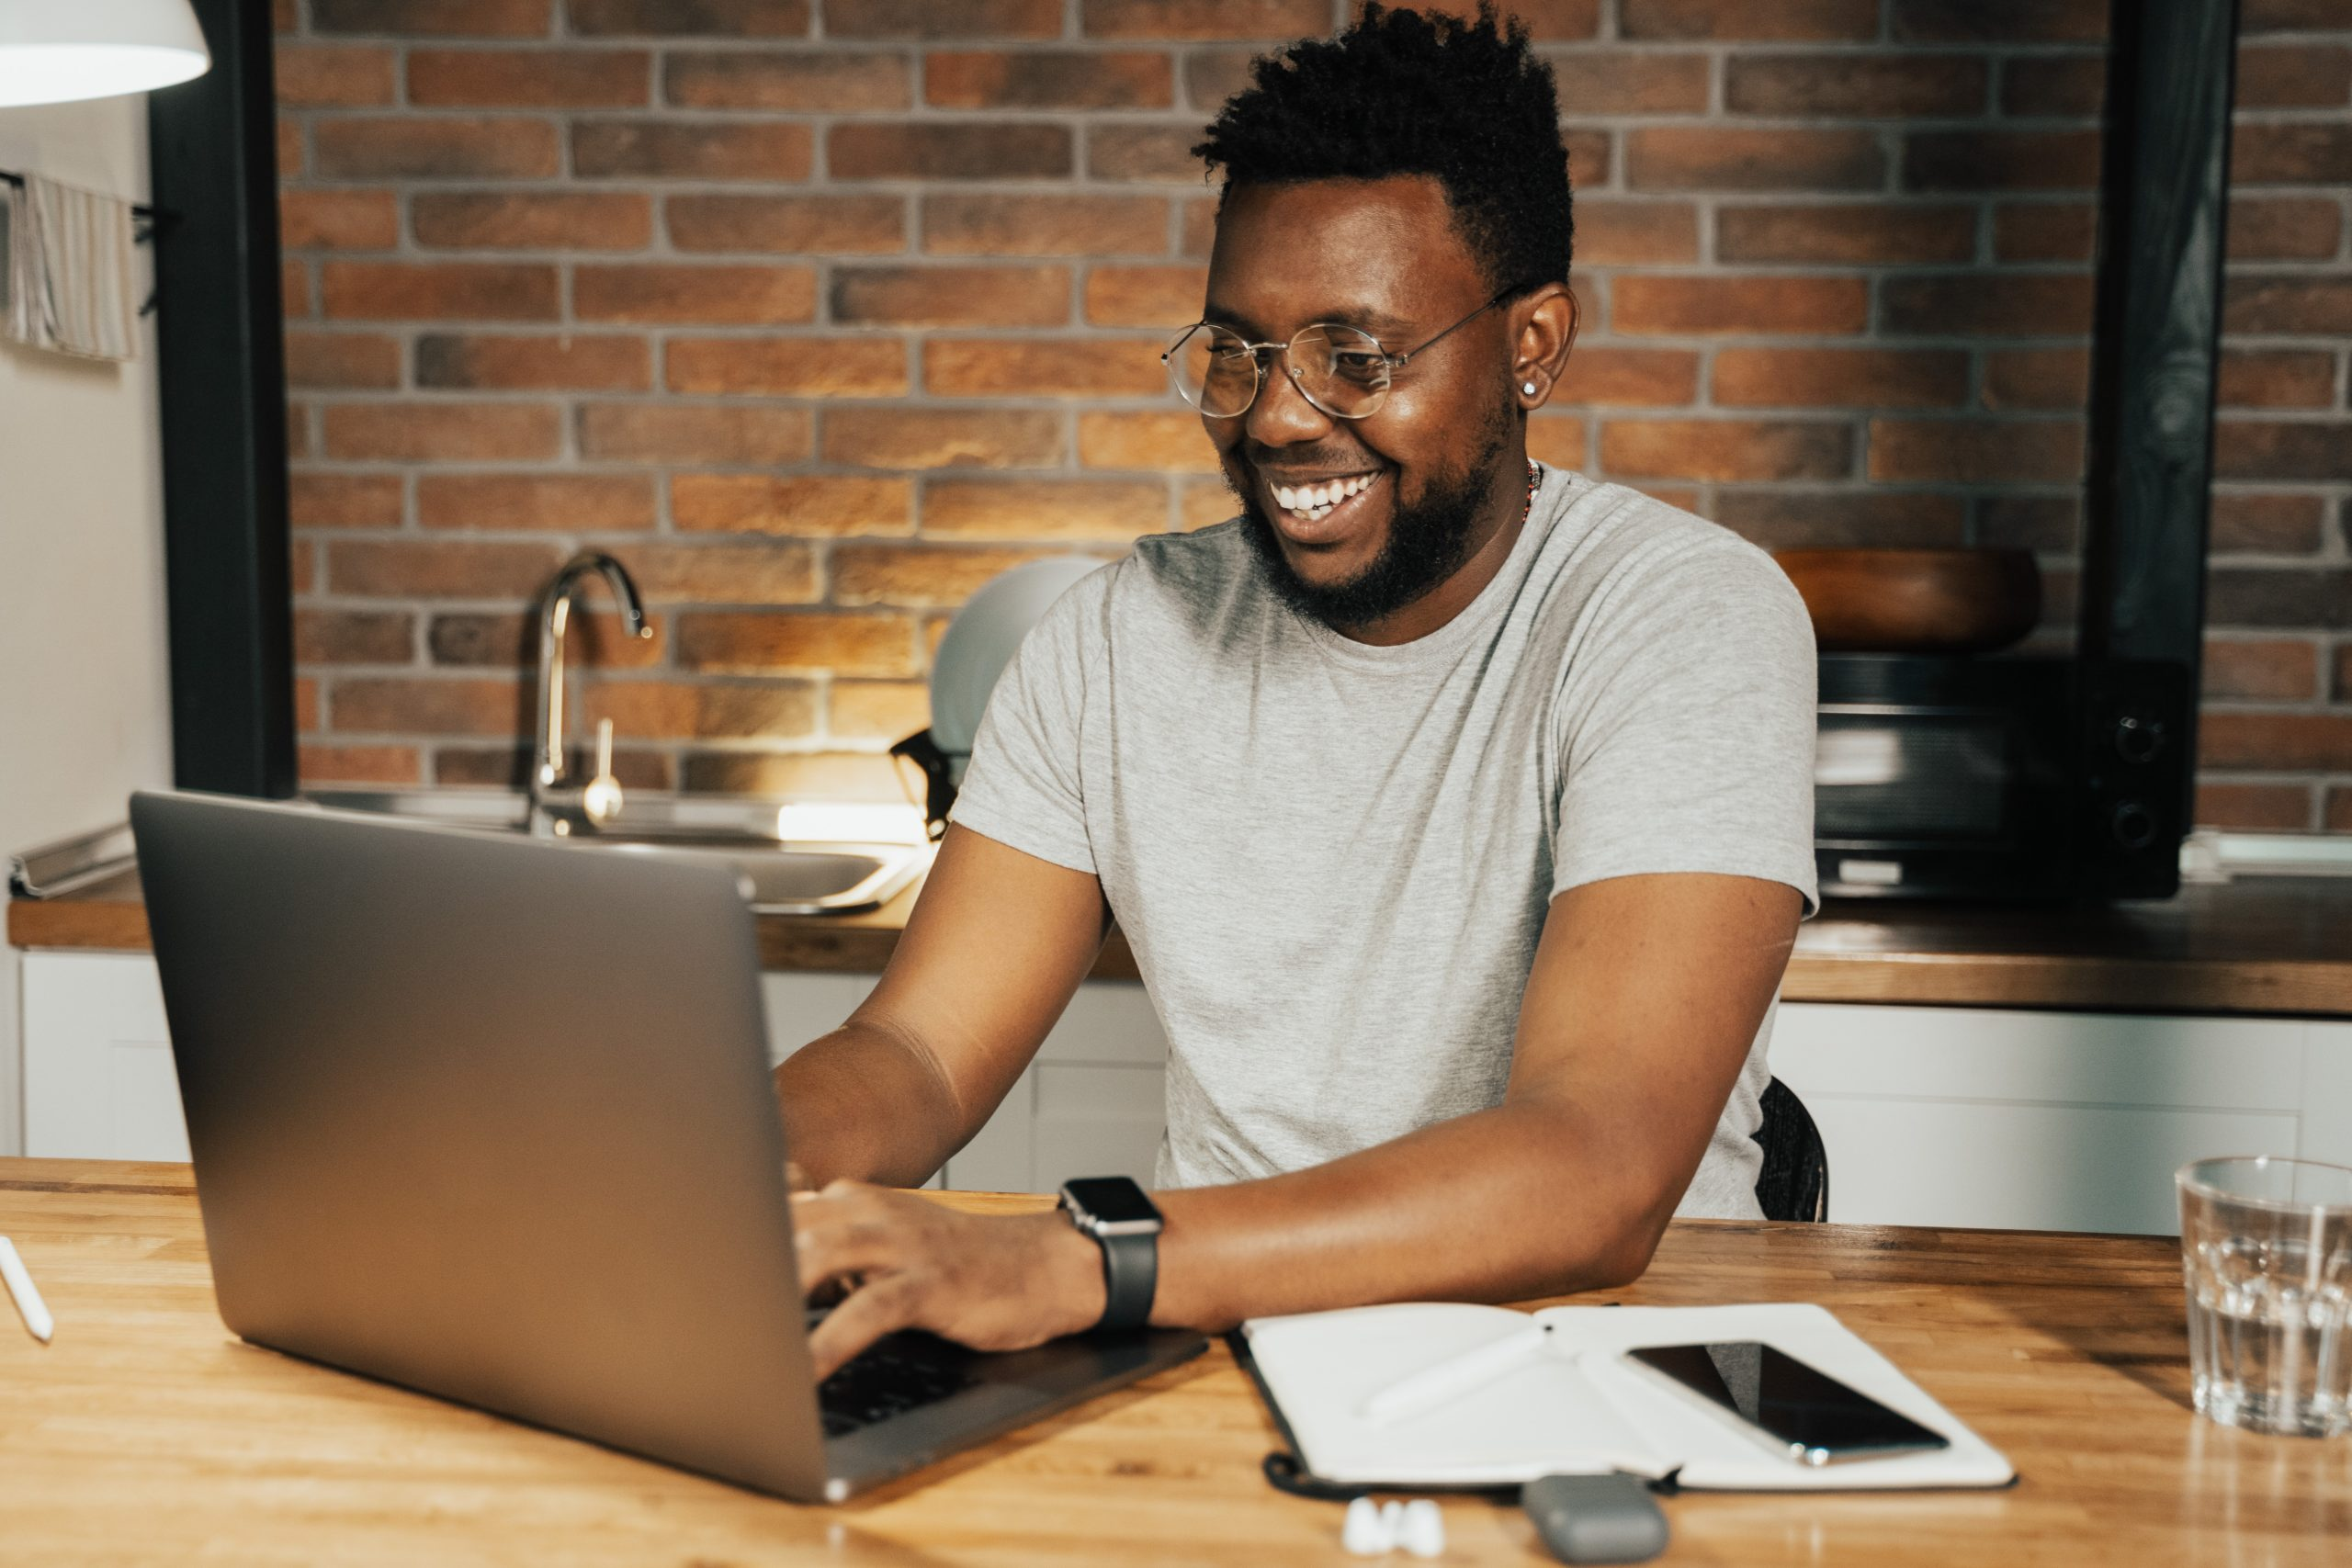 Smiling man on laptop building a personal brand